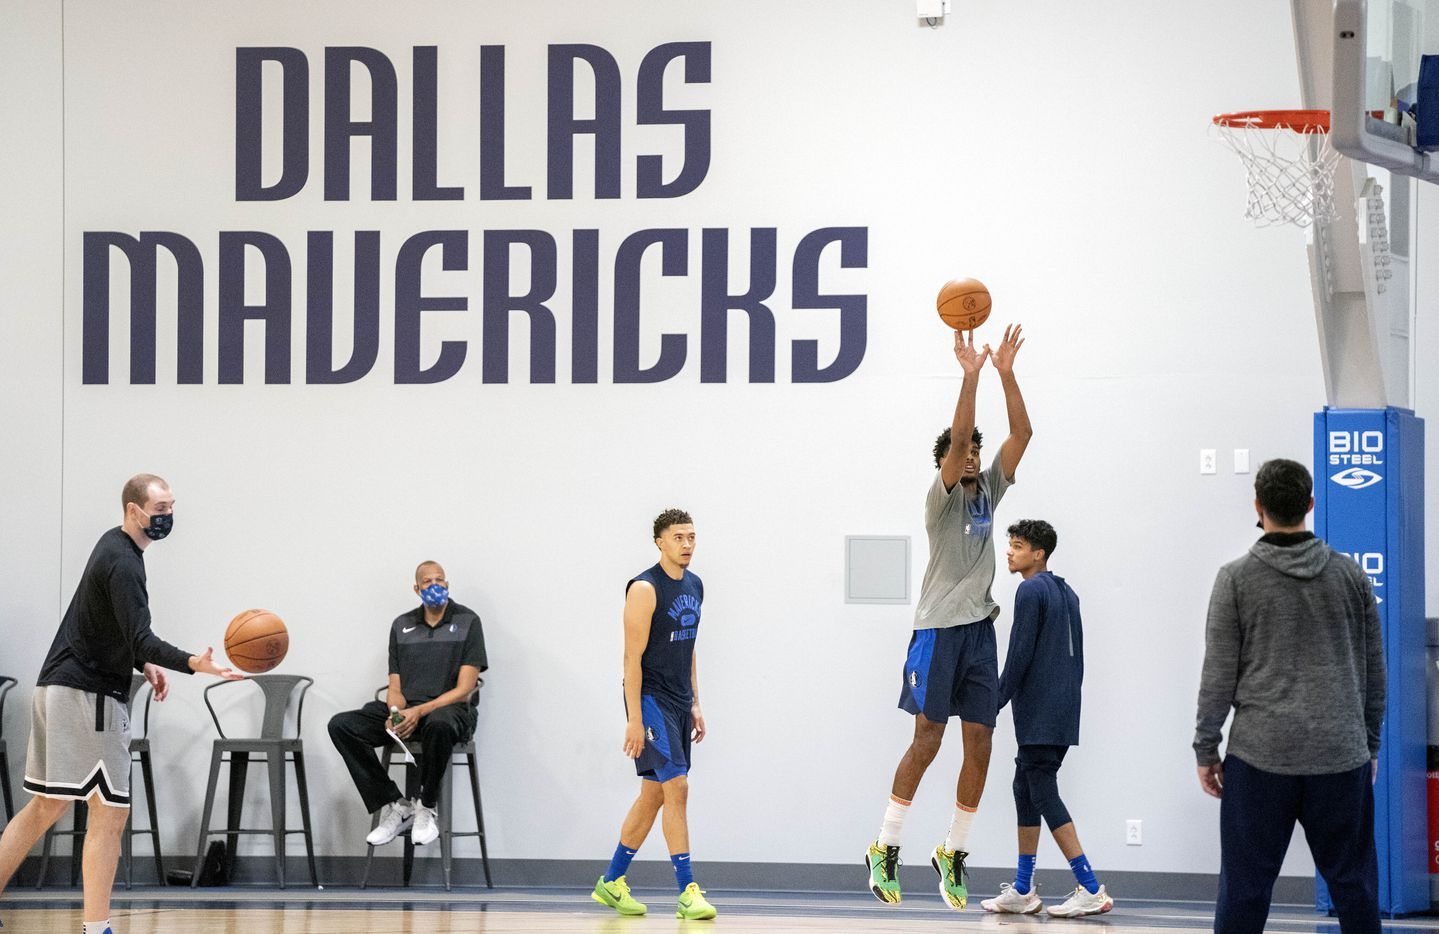 Dallas Mavericks forward Feron Hunt takes a shot as JaQuori McLaughlin, left, and Tyrell Terry, right, look on during the first practice of training camp Tuesday, September 28, 2021 at the Dallas Mavericks Training Center in Dallas. (Jeffrey McWhorter/Special Contributor)